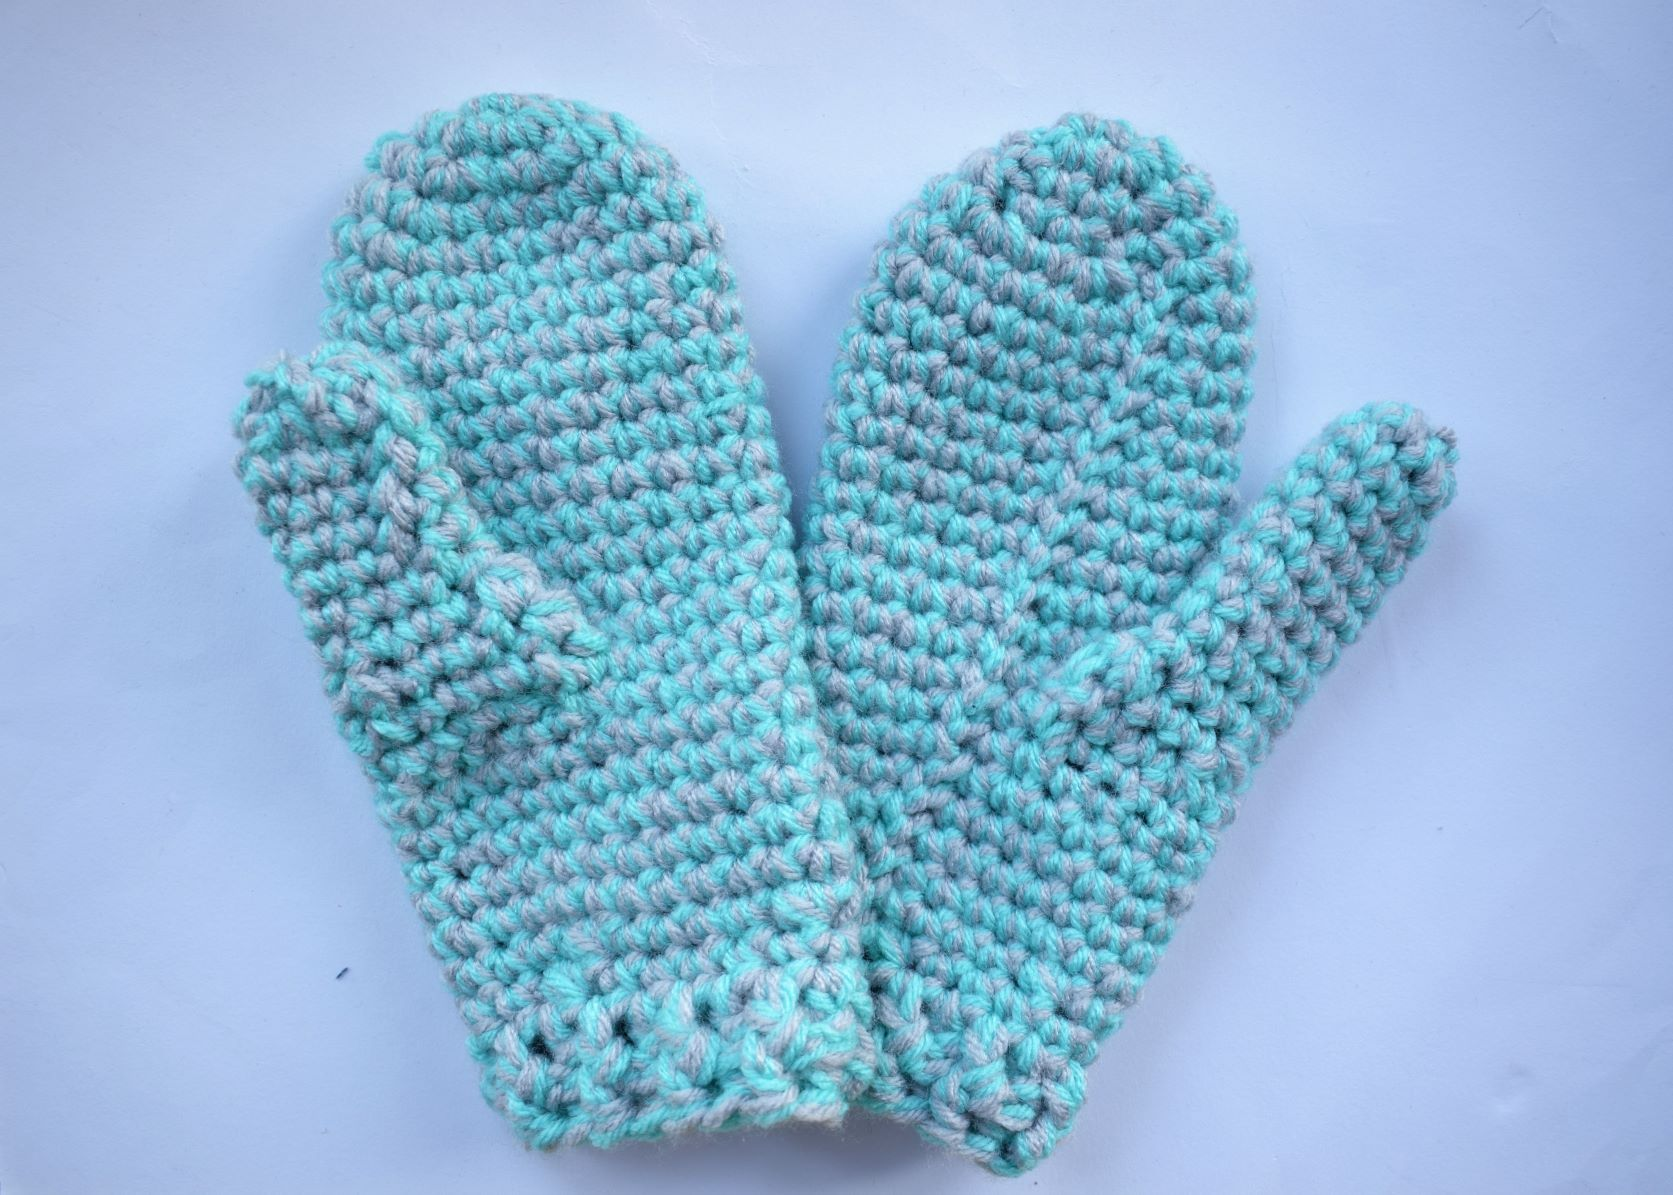 Crochet Grey and Turquoise Marl Mittens